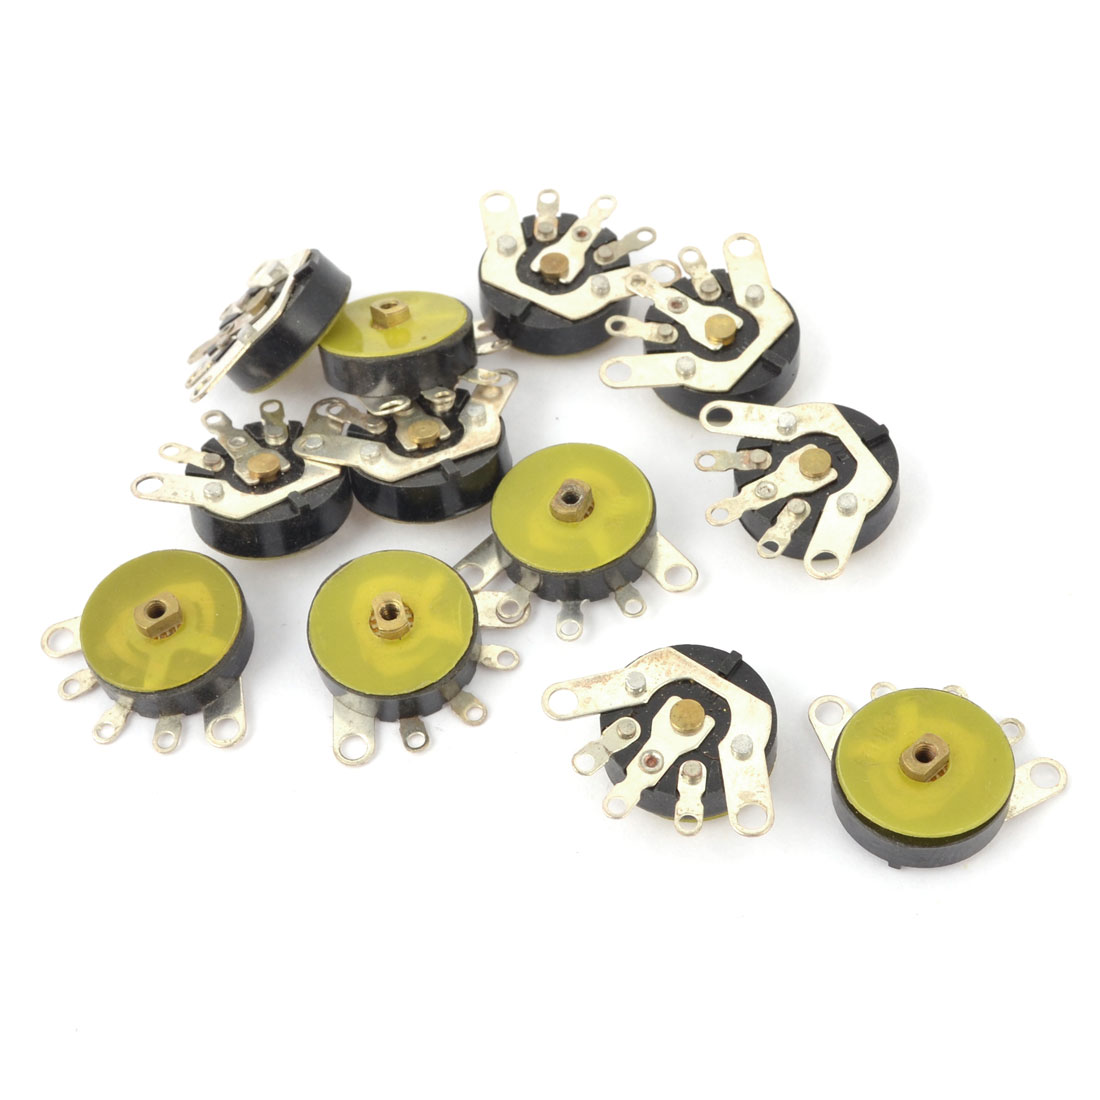 10 Pcs 12.5mm Dia Carbon Film Rotary Potentiometer Switch 10K Ohm